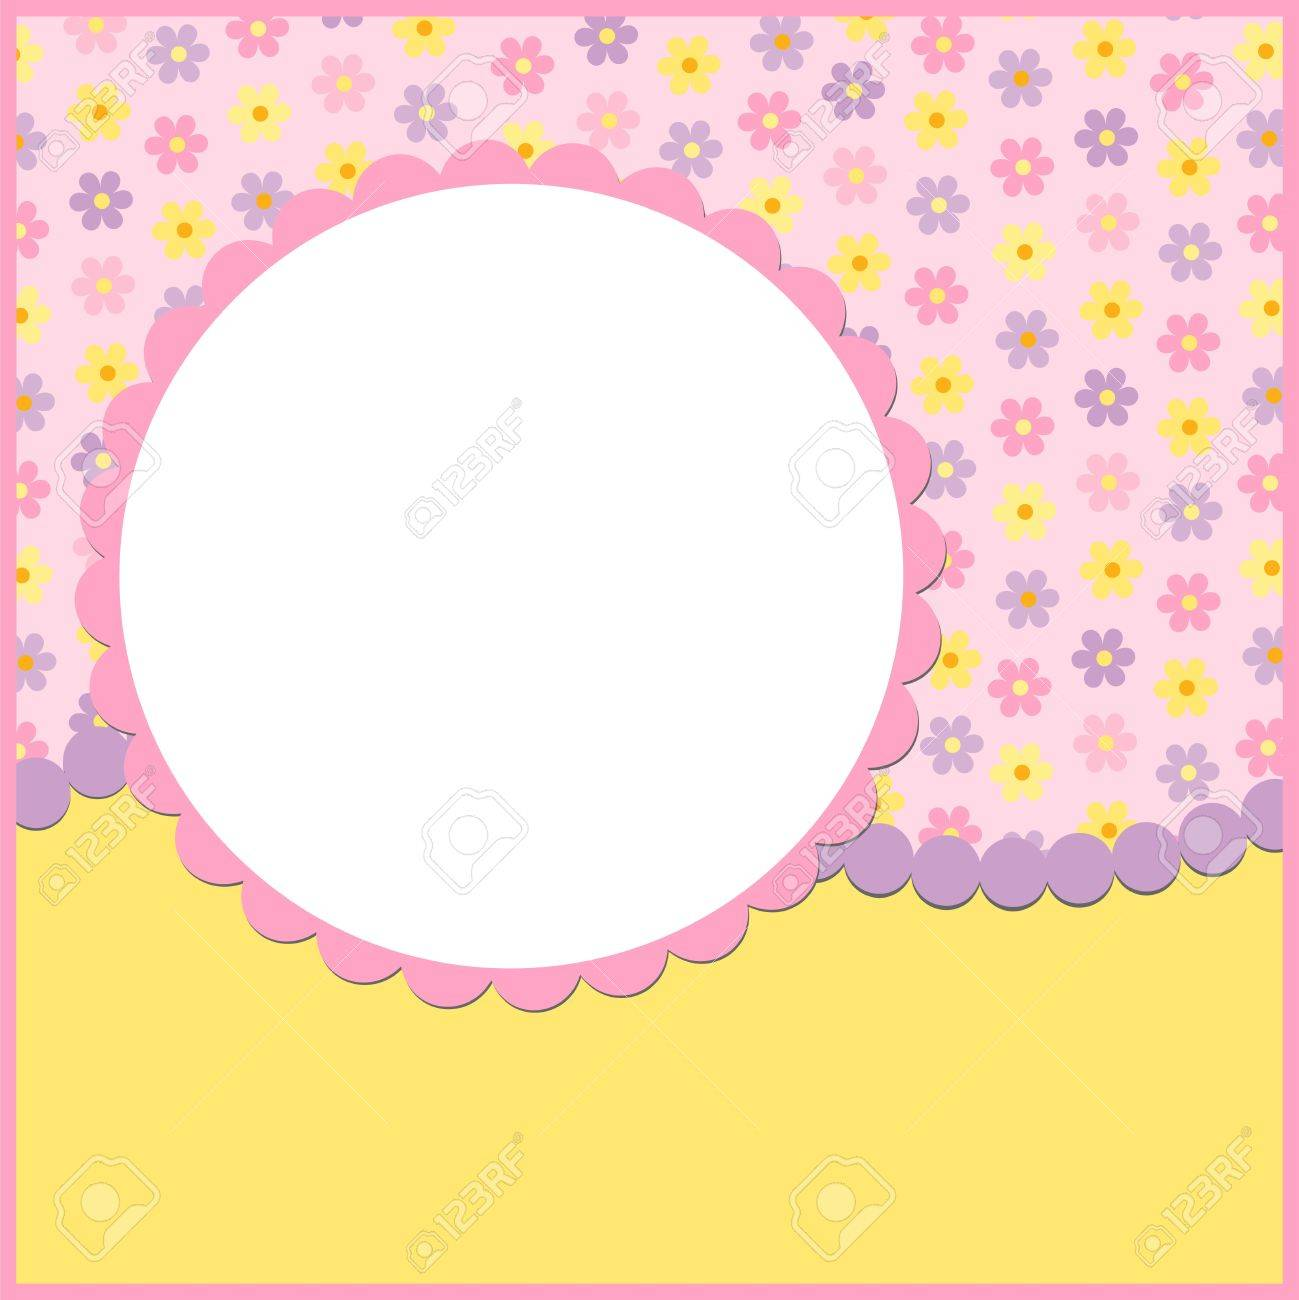 Blank Template For Greetings Card Or Photo Frame In Pink Colors – Free Blank Greeting Card Templates